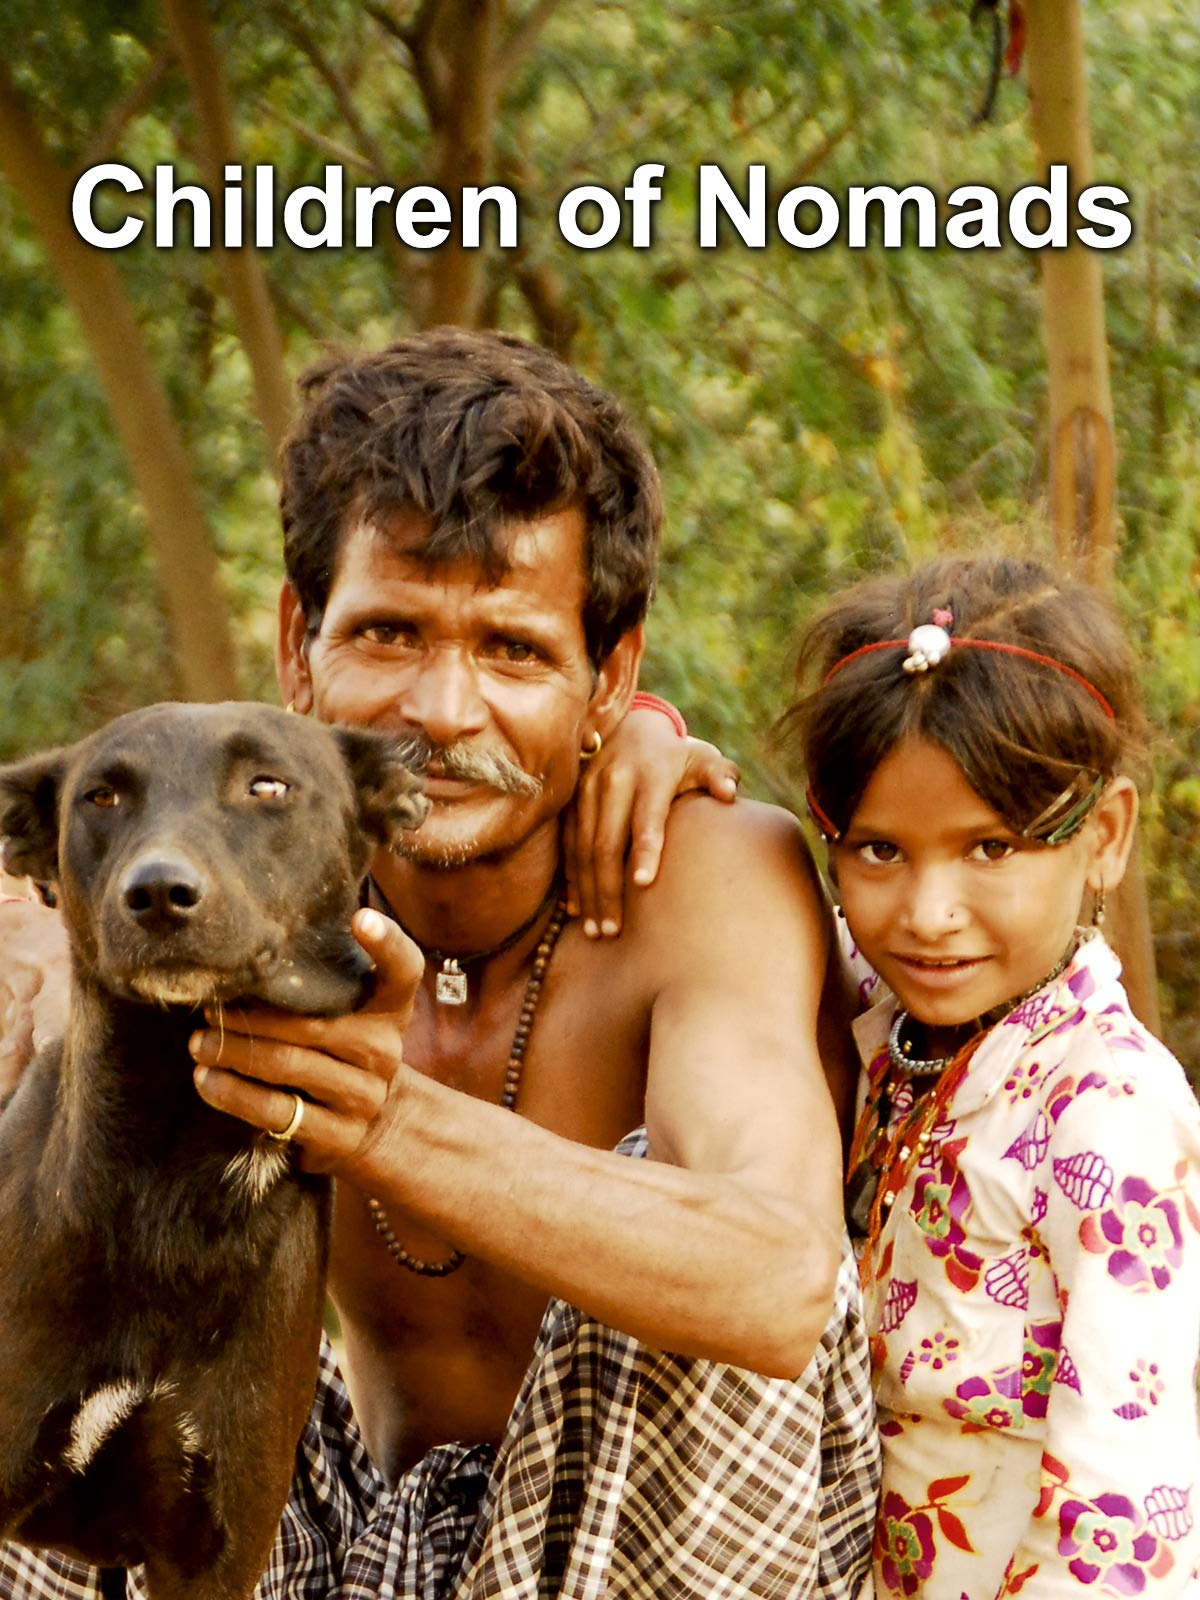 Children of Nomads